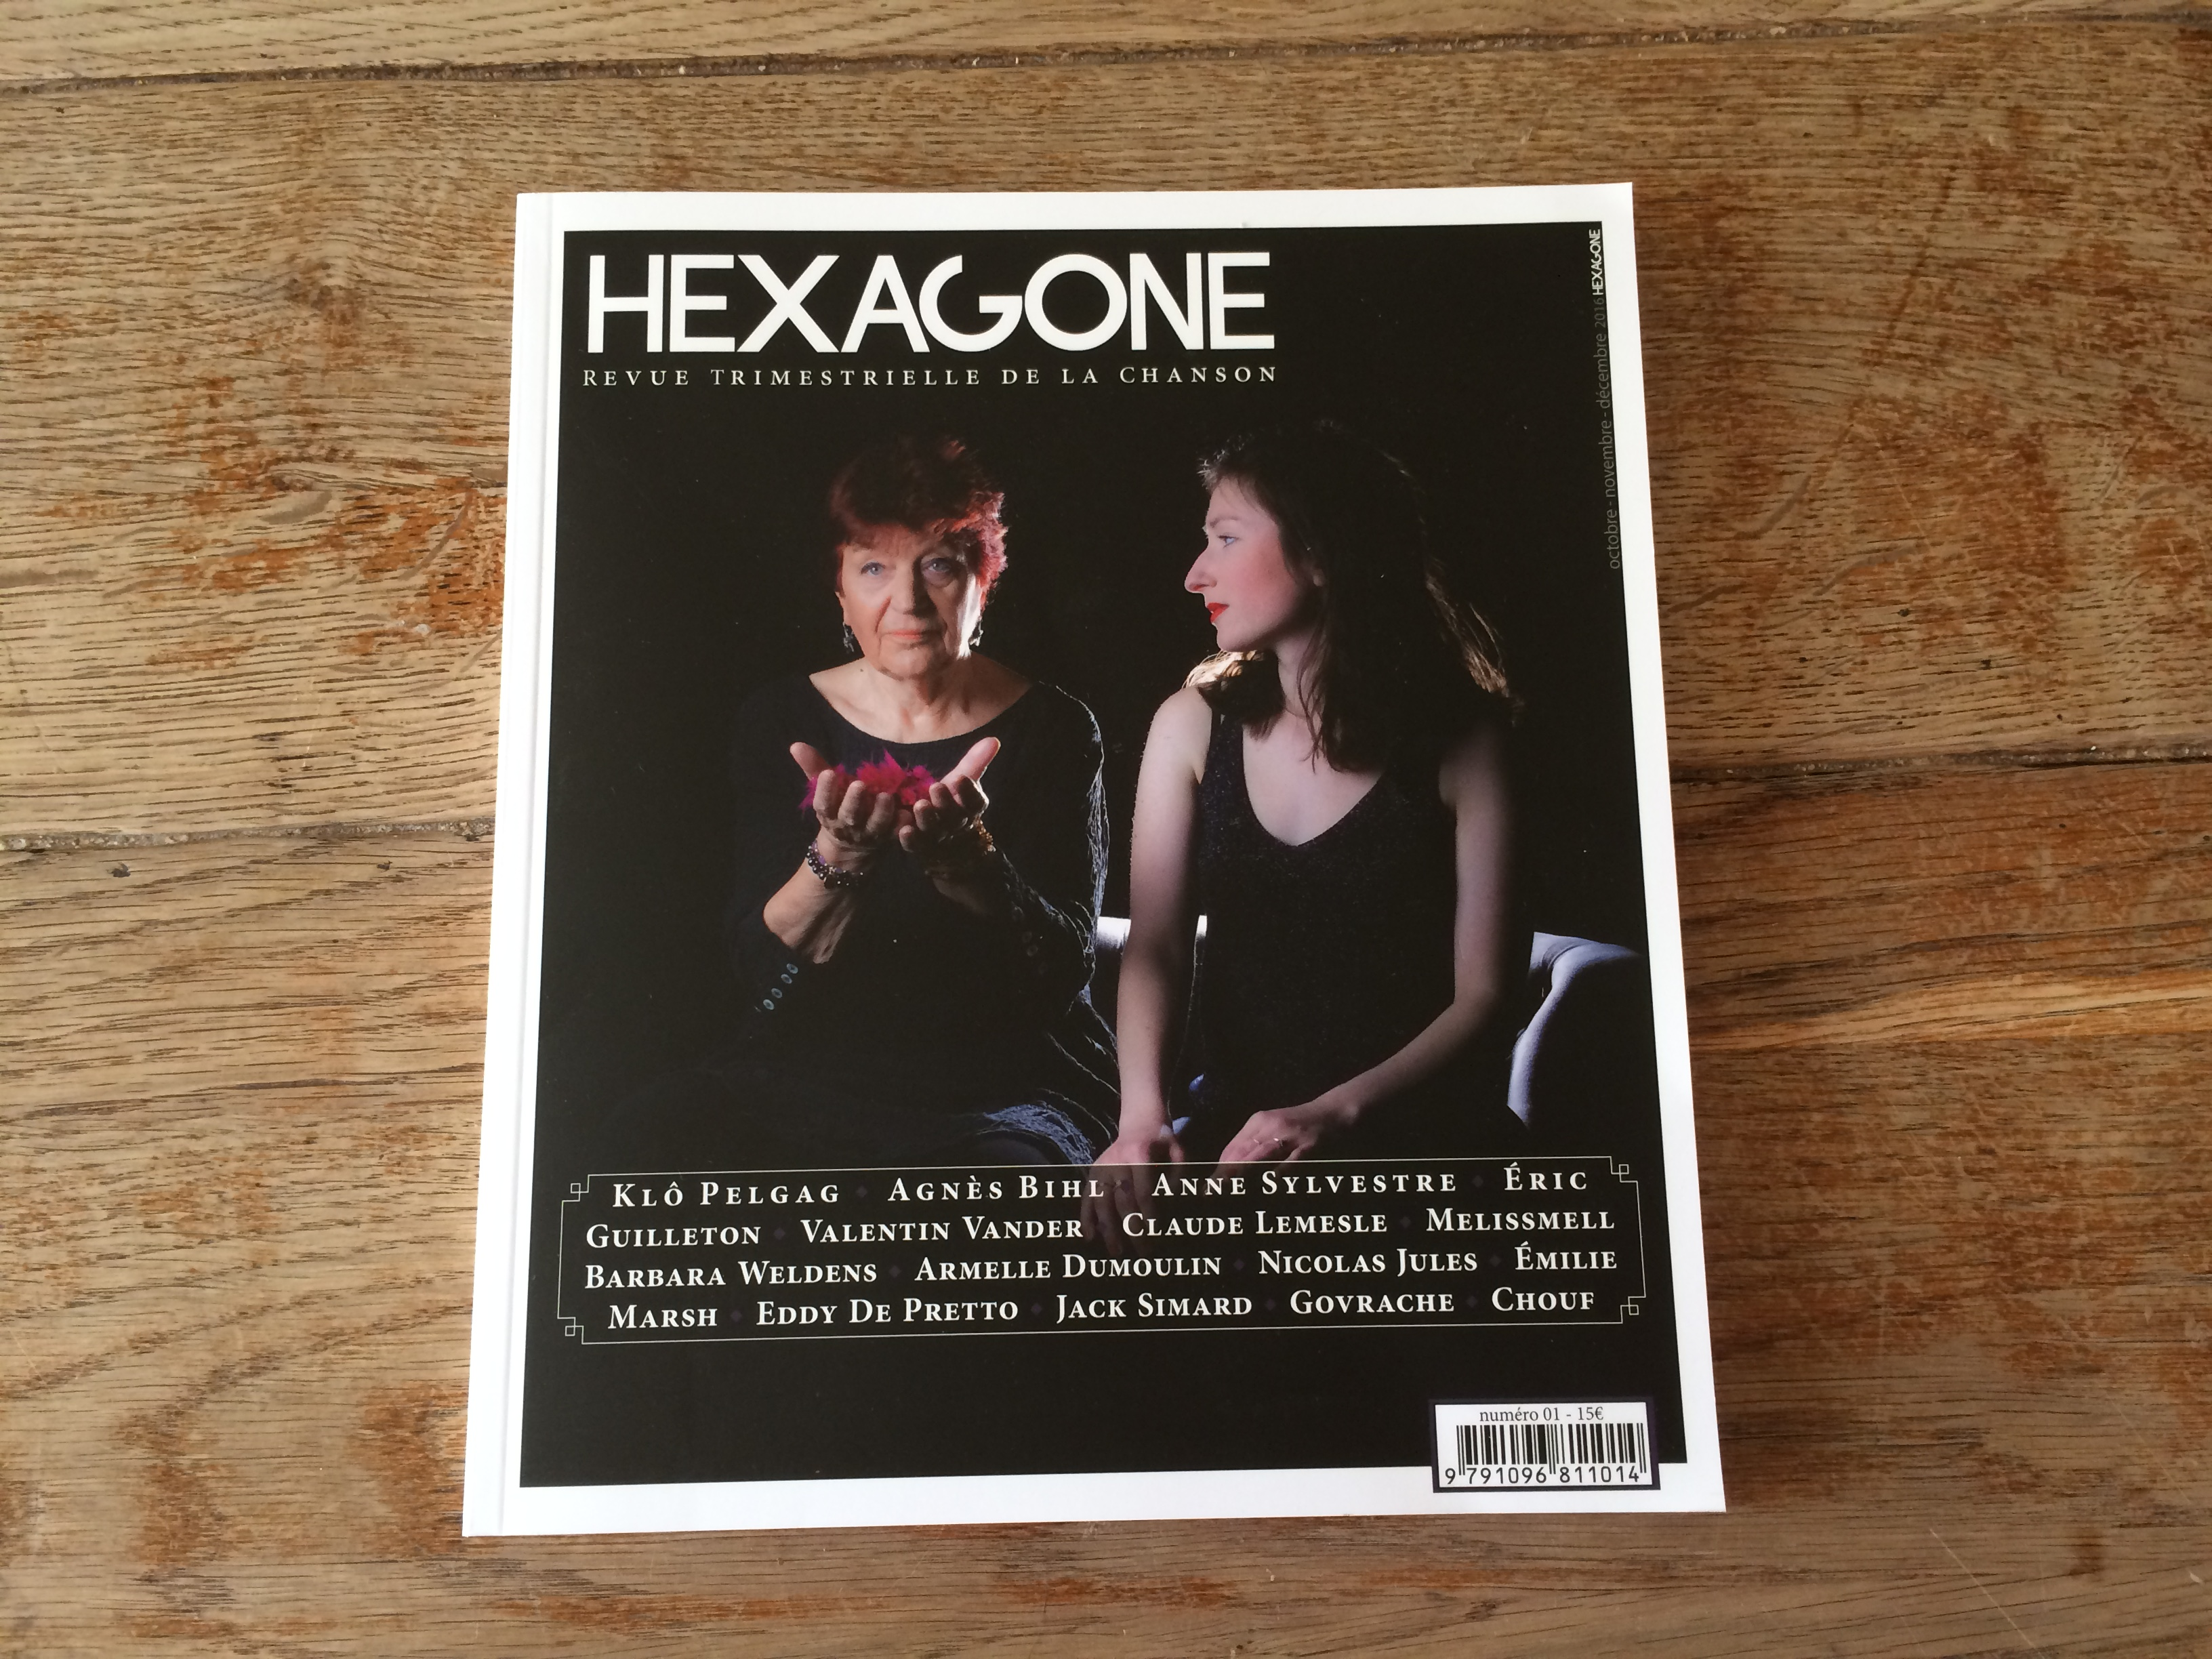 La revue trimestrielle Hexagone. @MD